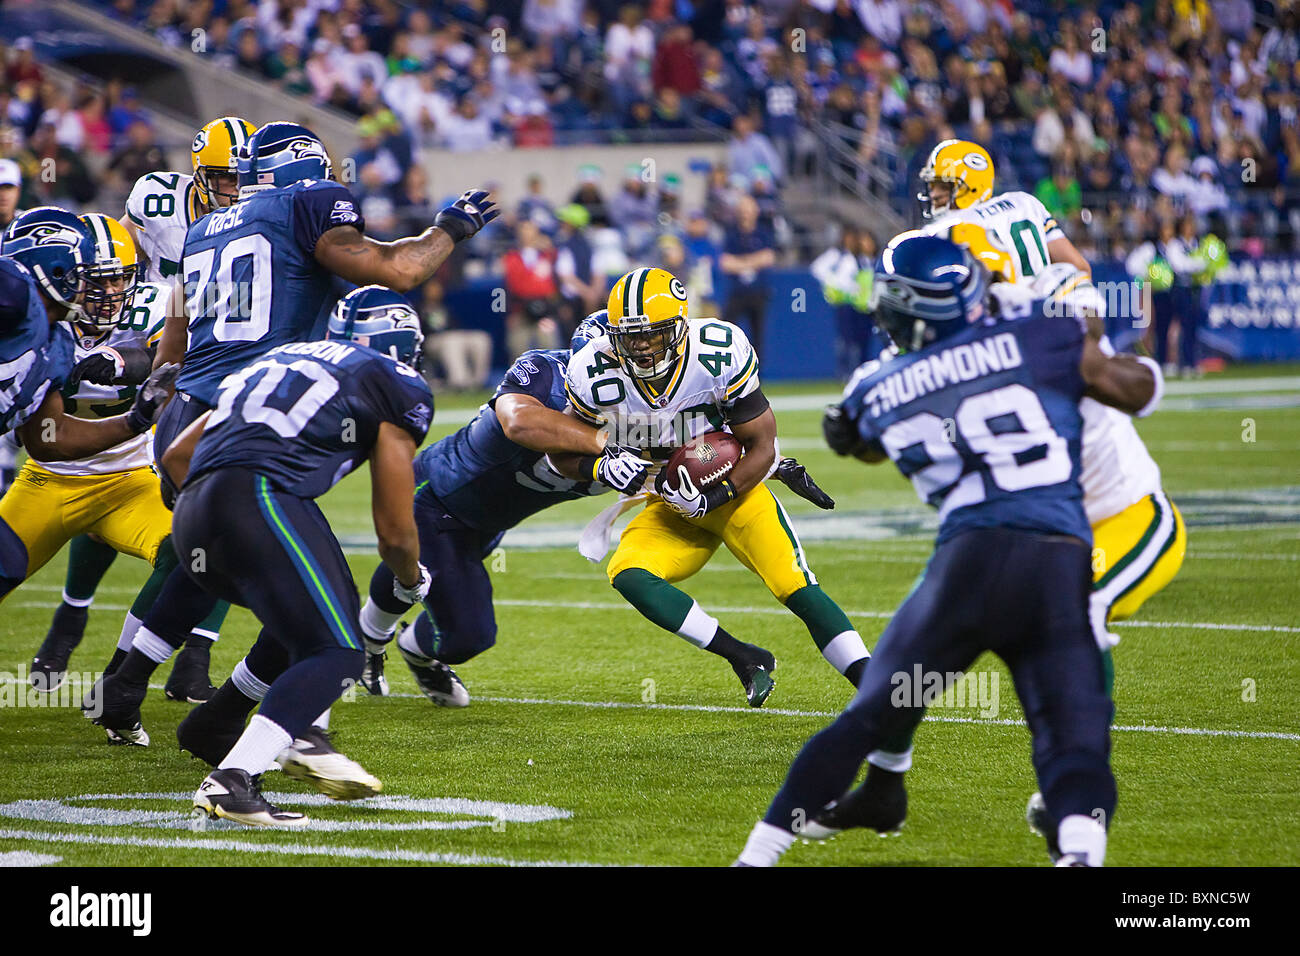 Seattle Seahawks playing the Green Bay Packers during and NFL football game - Stock Image